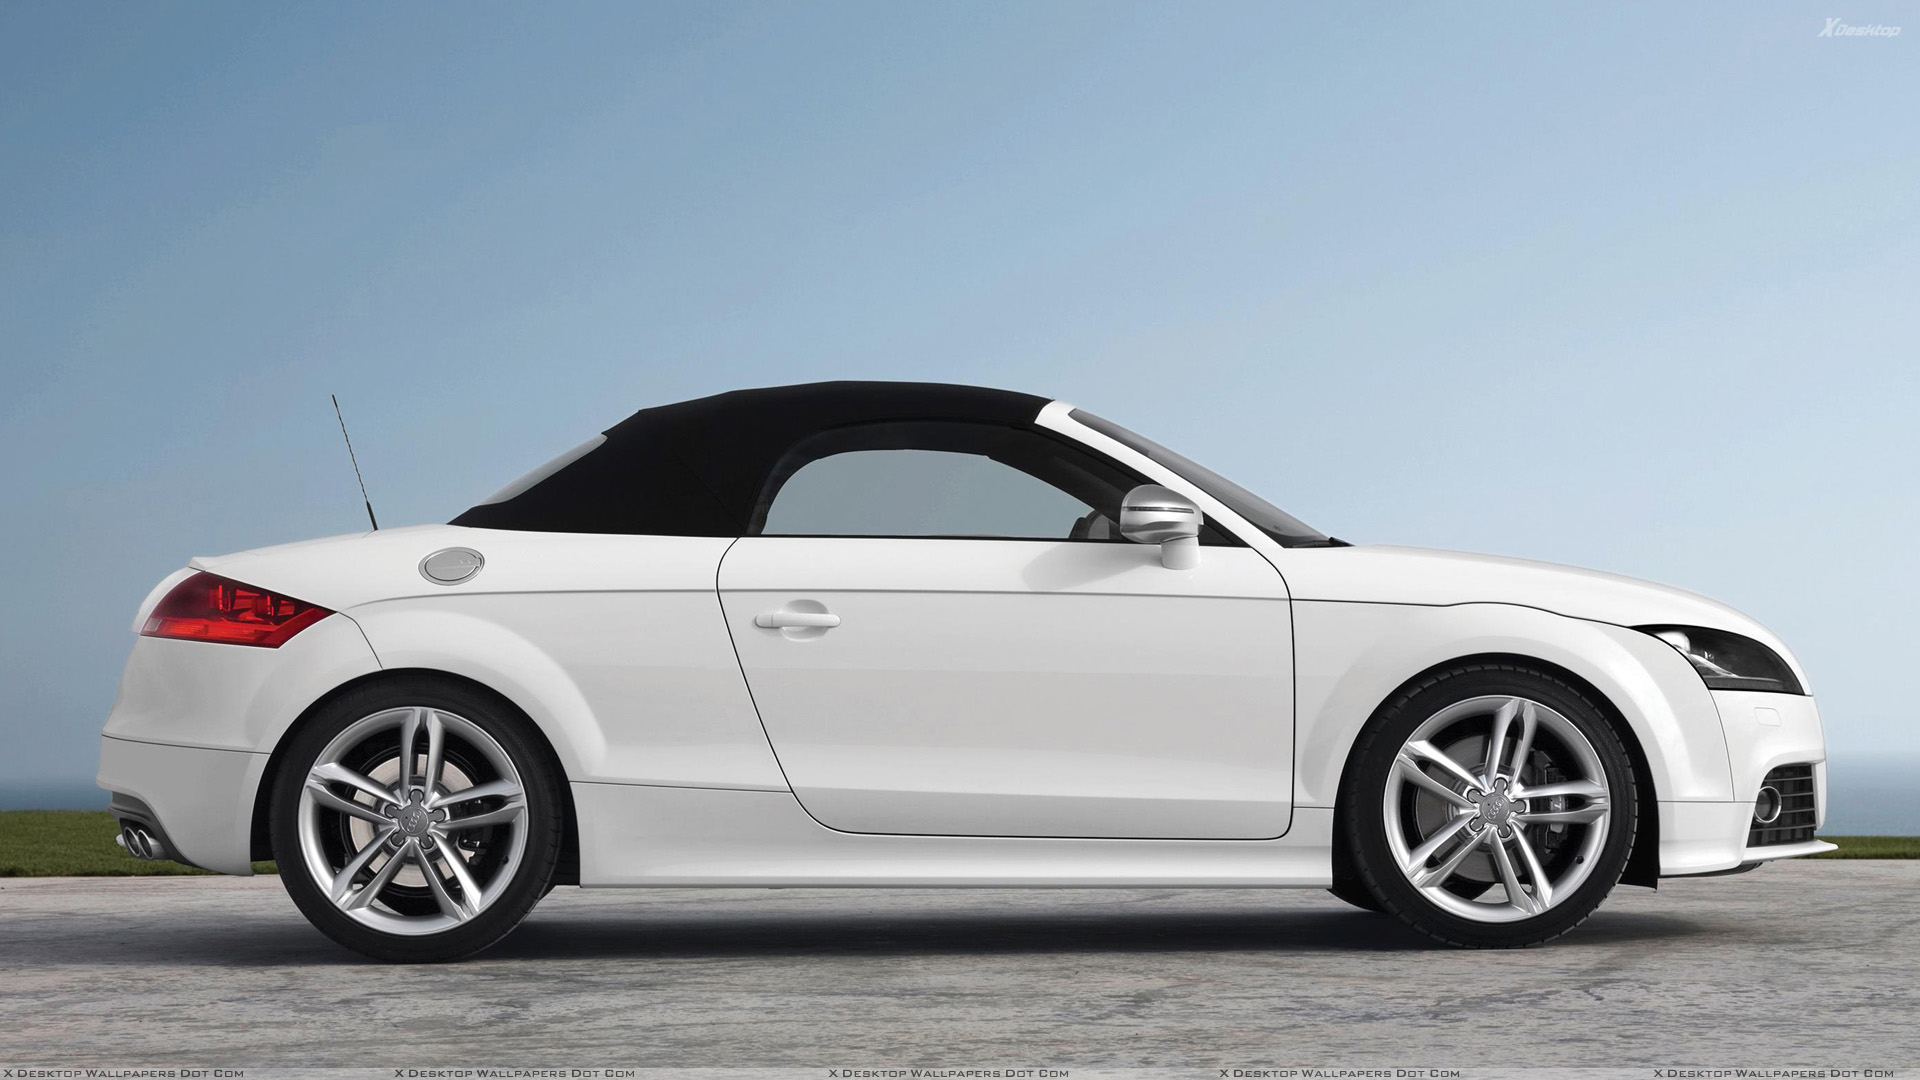 Cars Wallpapers Photos Amp Images In Hd